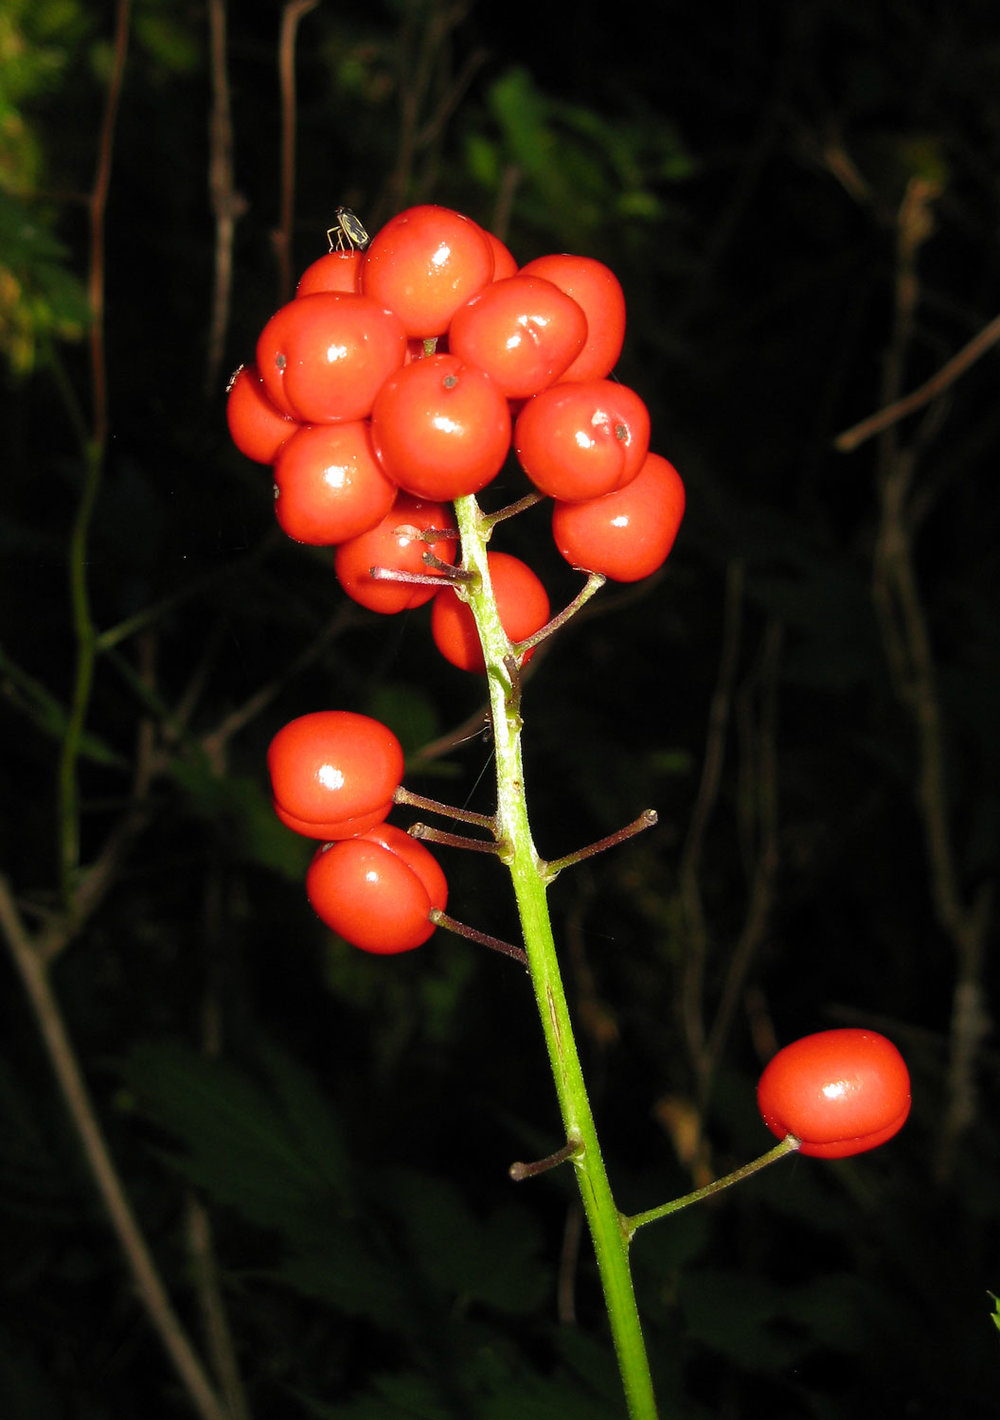 baneberry red berries poisonous plant Southeast Alaska